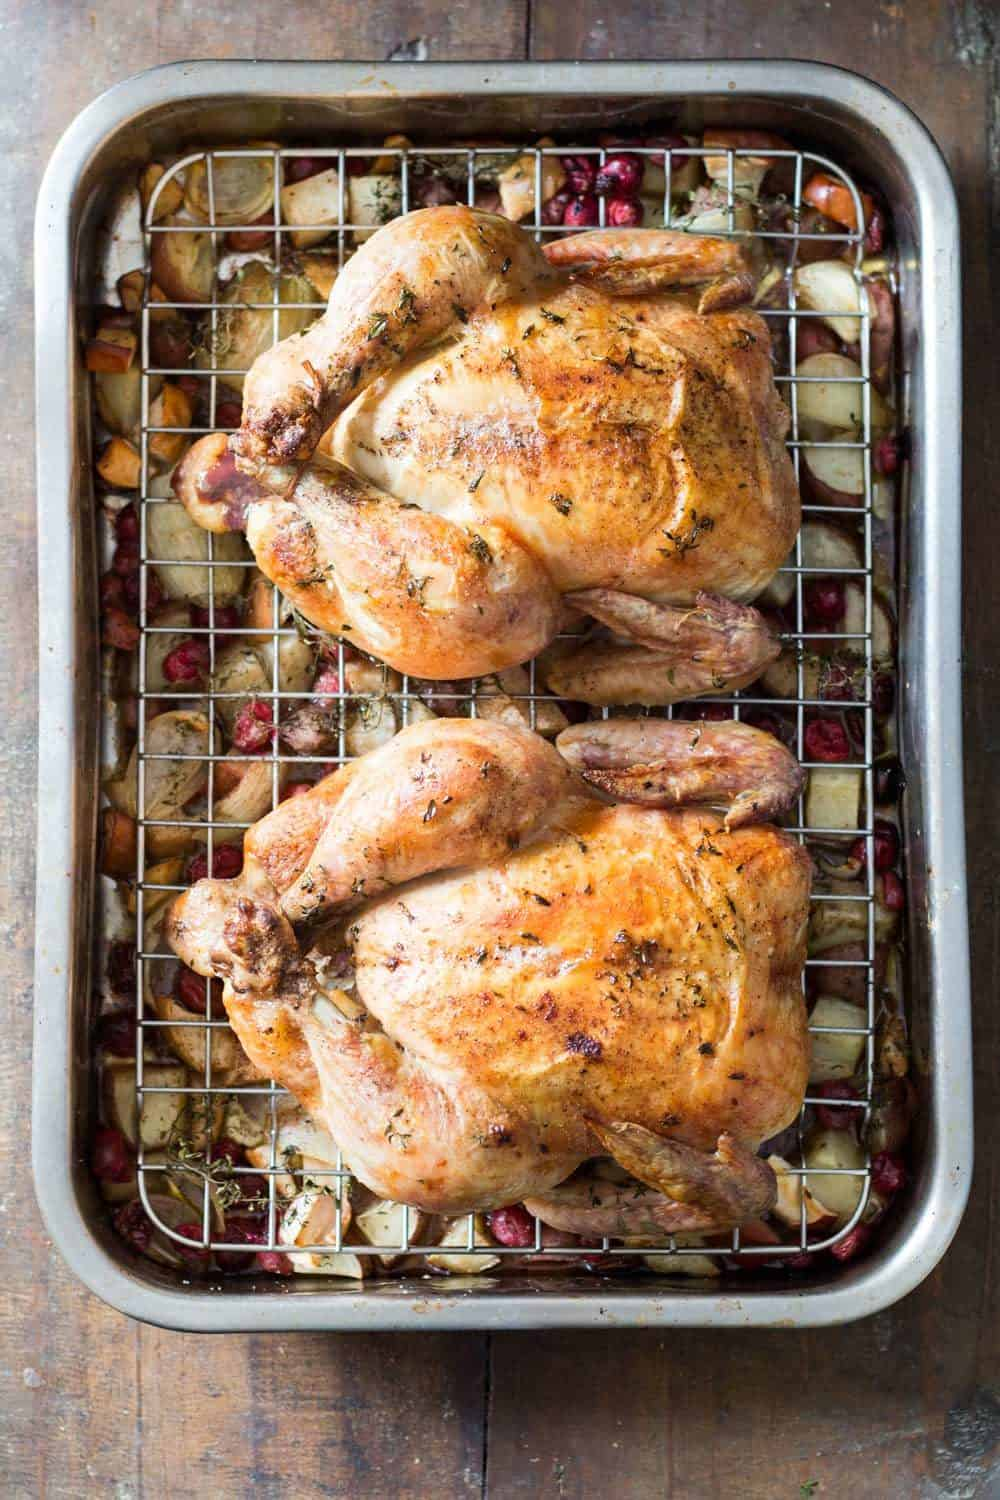 Two Whole Roasted Chickens